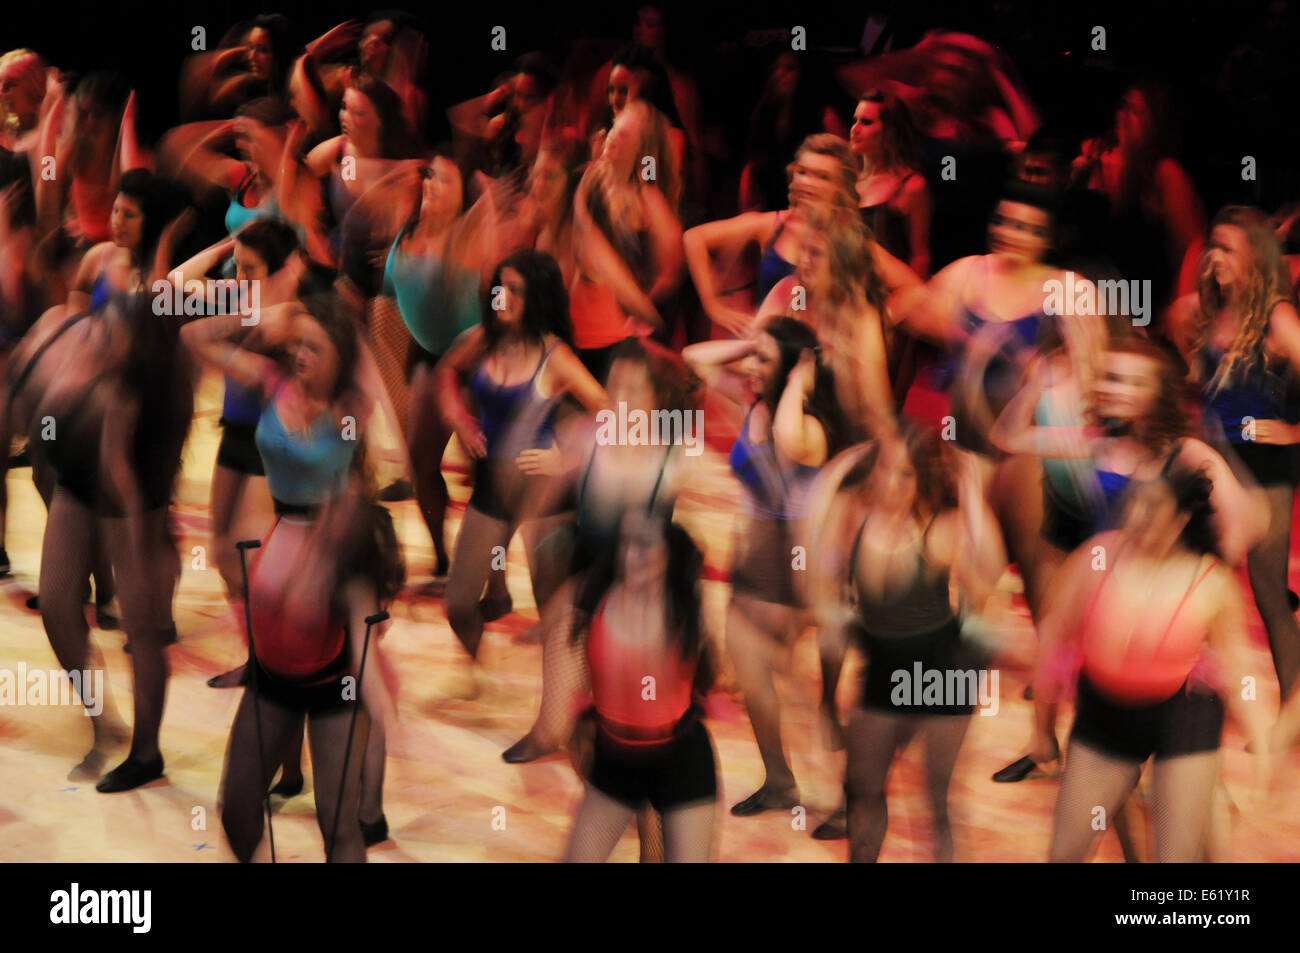 Dana Hills High School students performing on stage at Soka Performing Arts Center - Stock Image